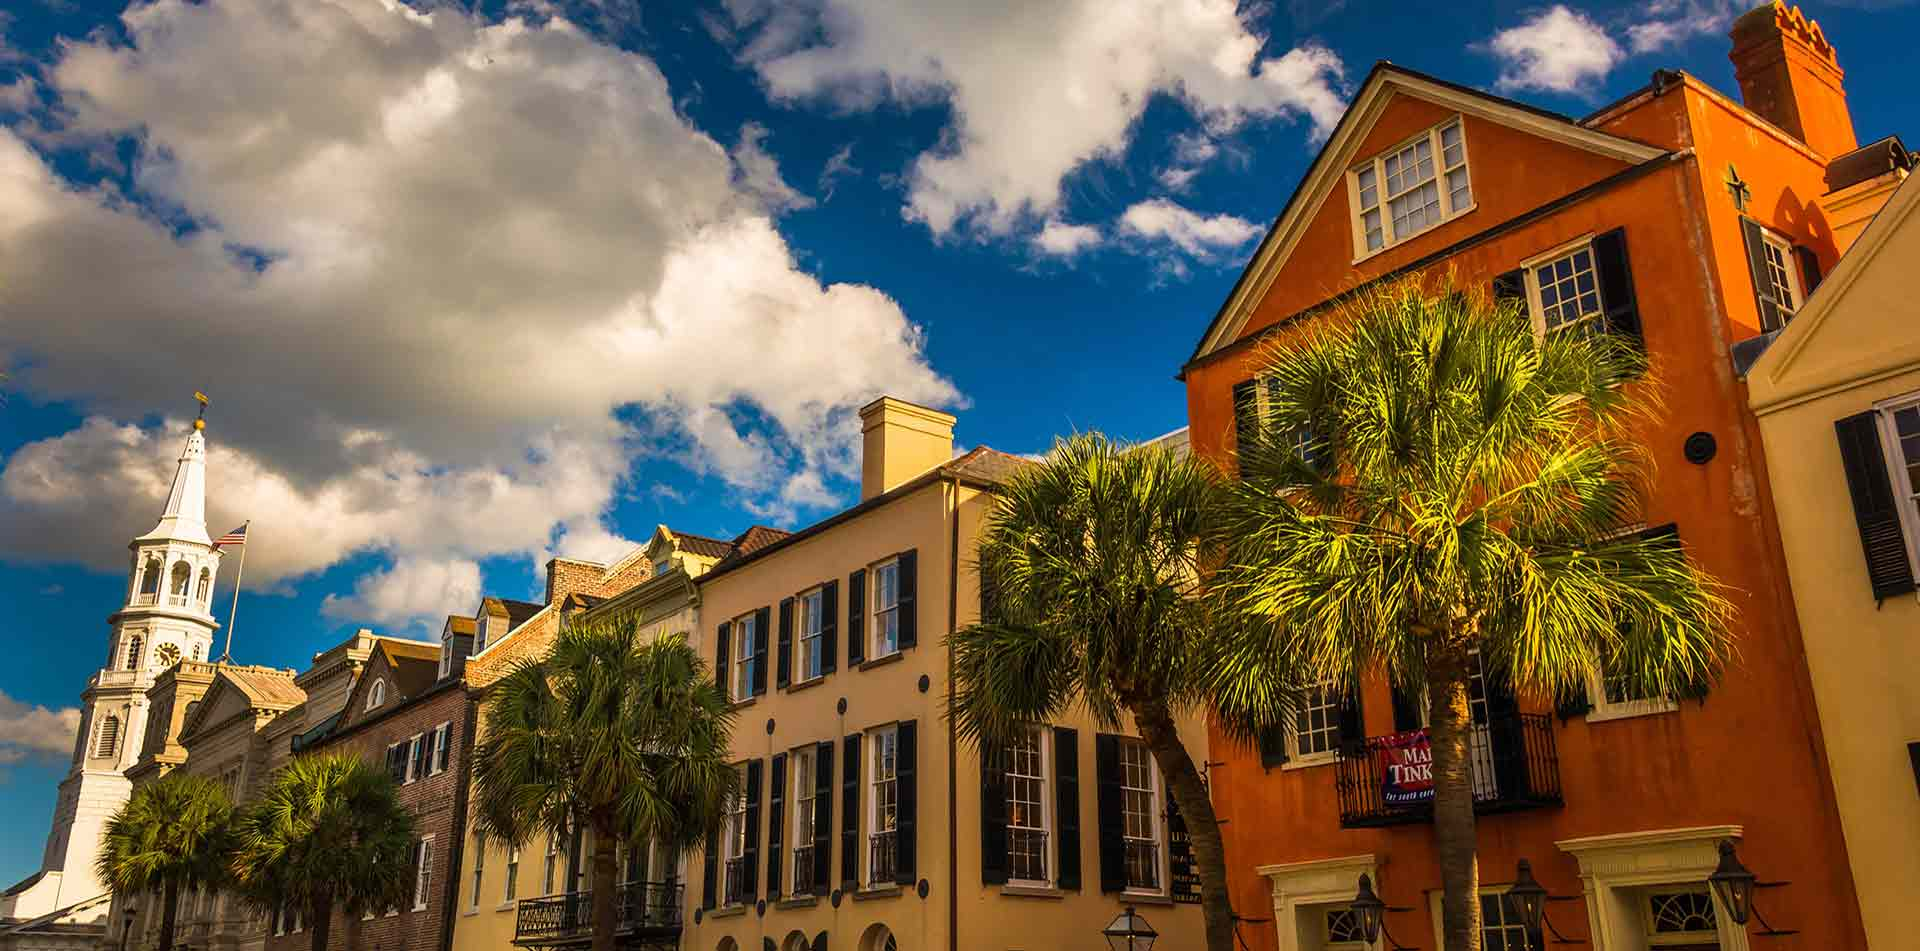 North America United States South Carolina Charleston Broad Street historic colorful buildings - luxury vacation destinations